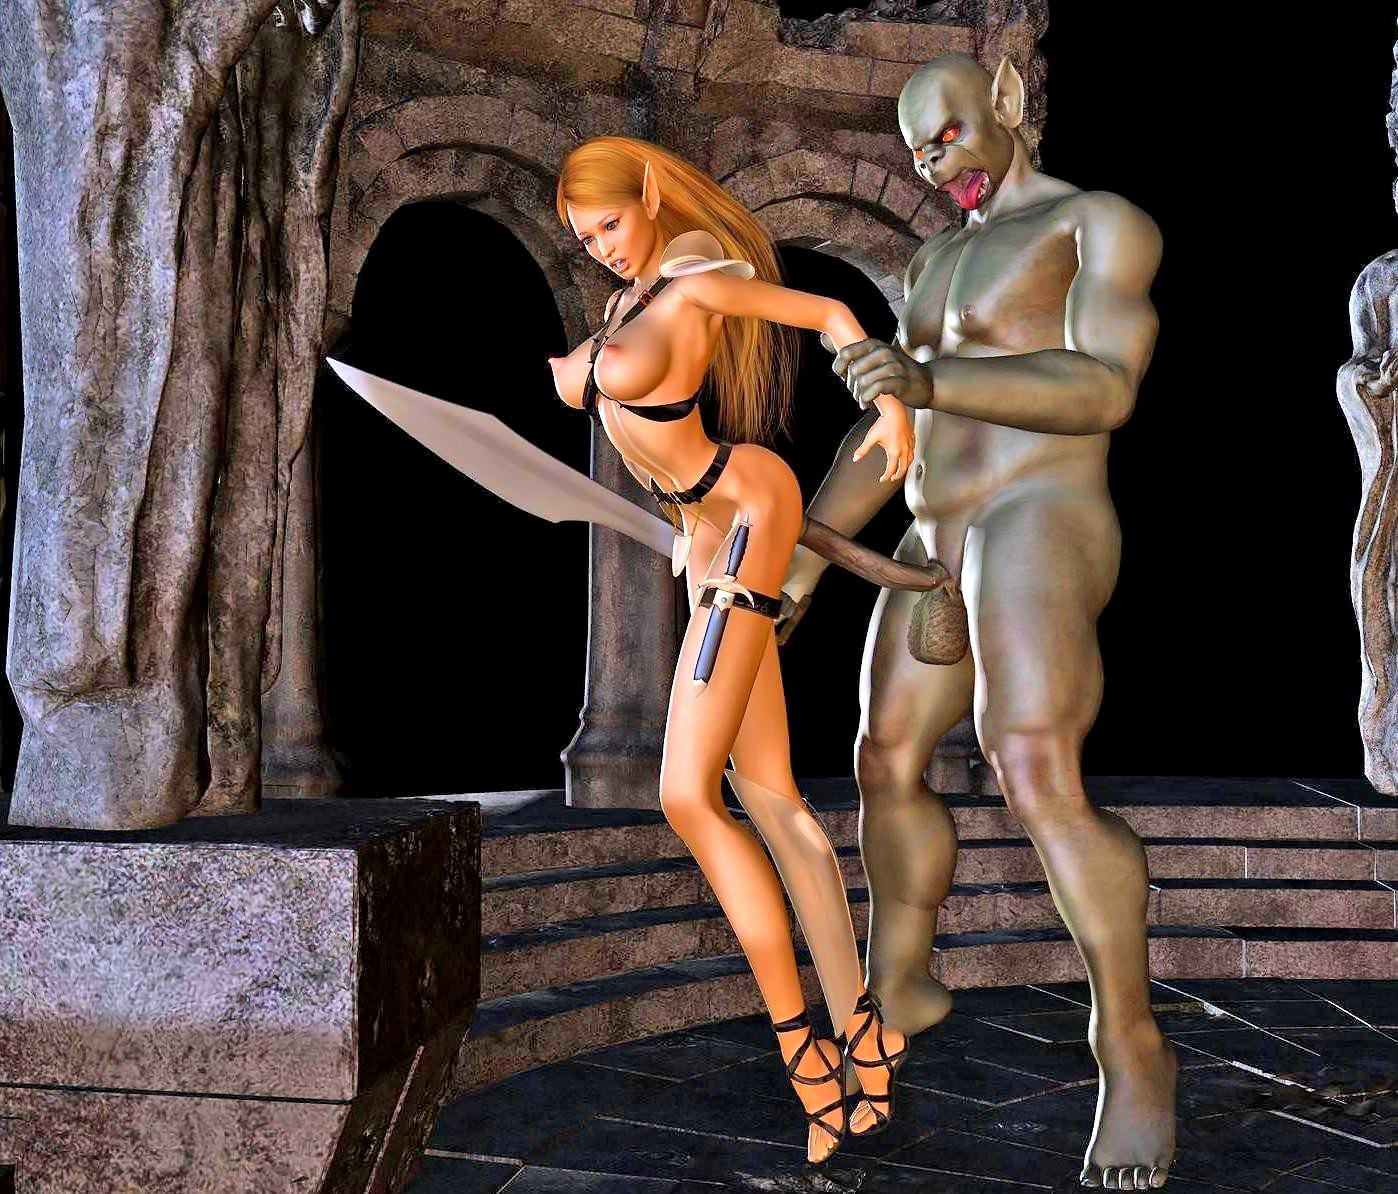 Nude warrior girl animation video nackt picture